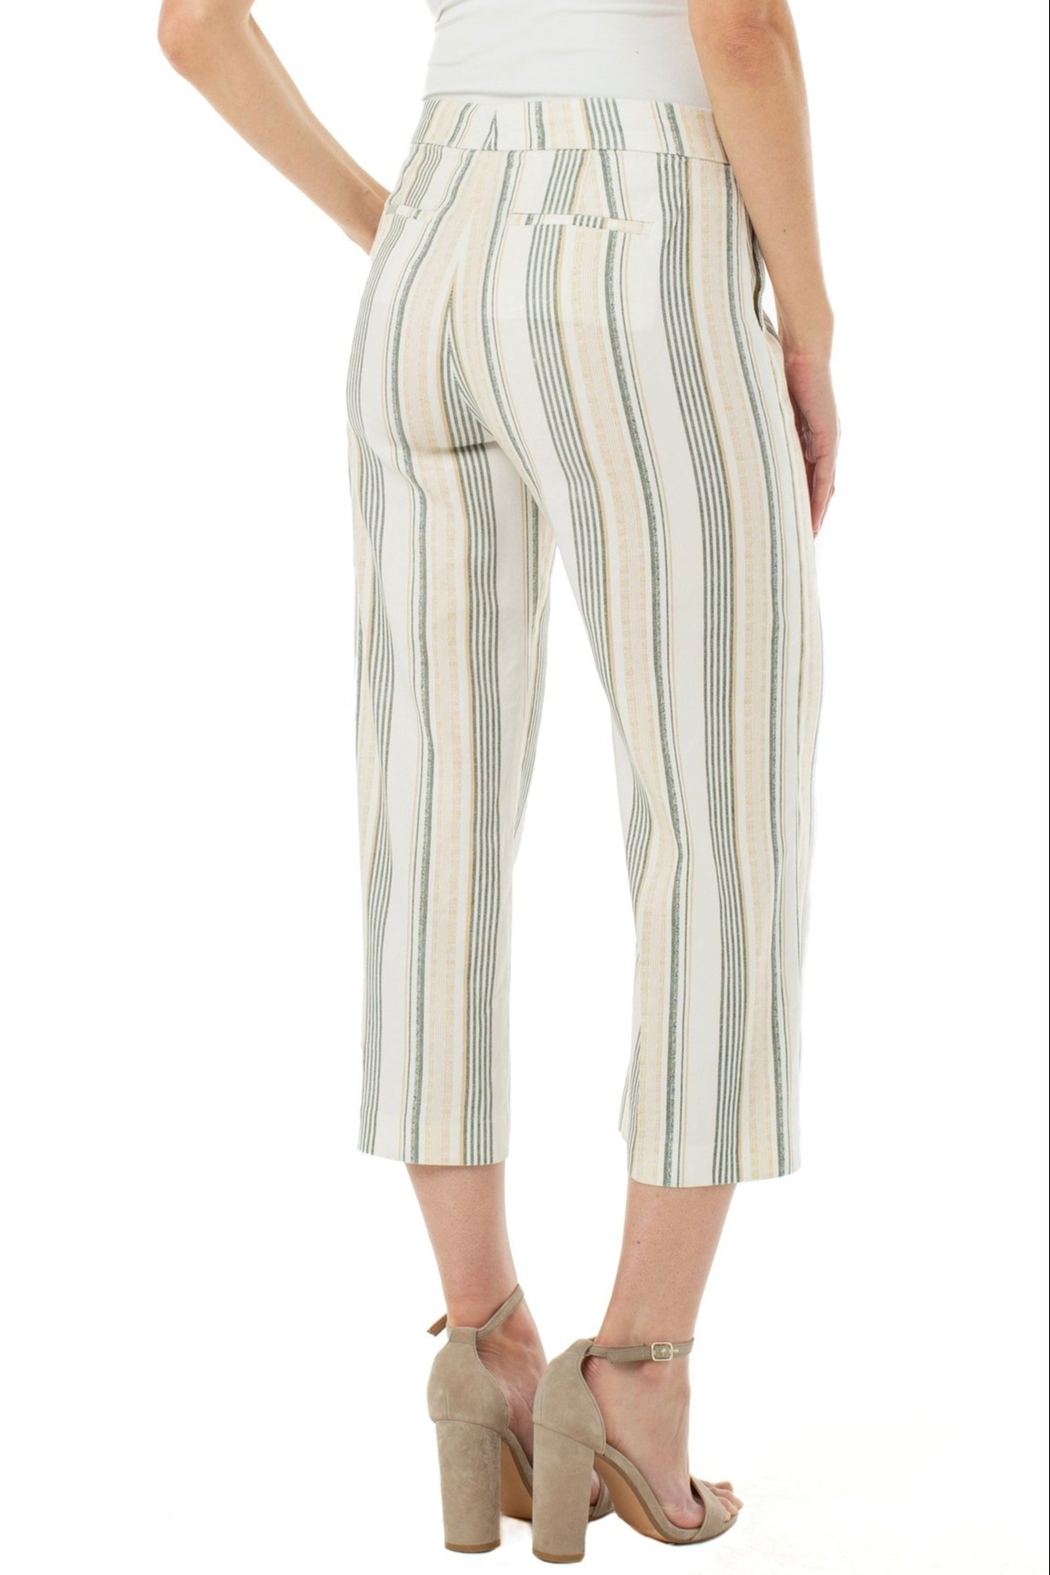 Liverpool Stretch Linen Cropped Trouser - Side Cropped Image